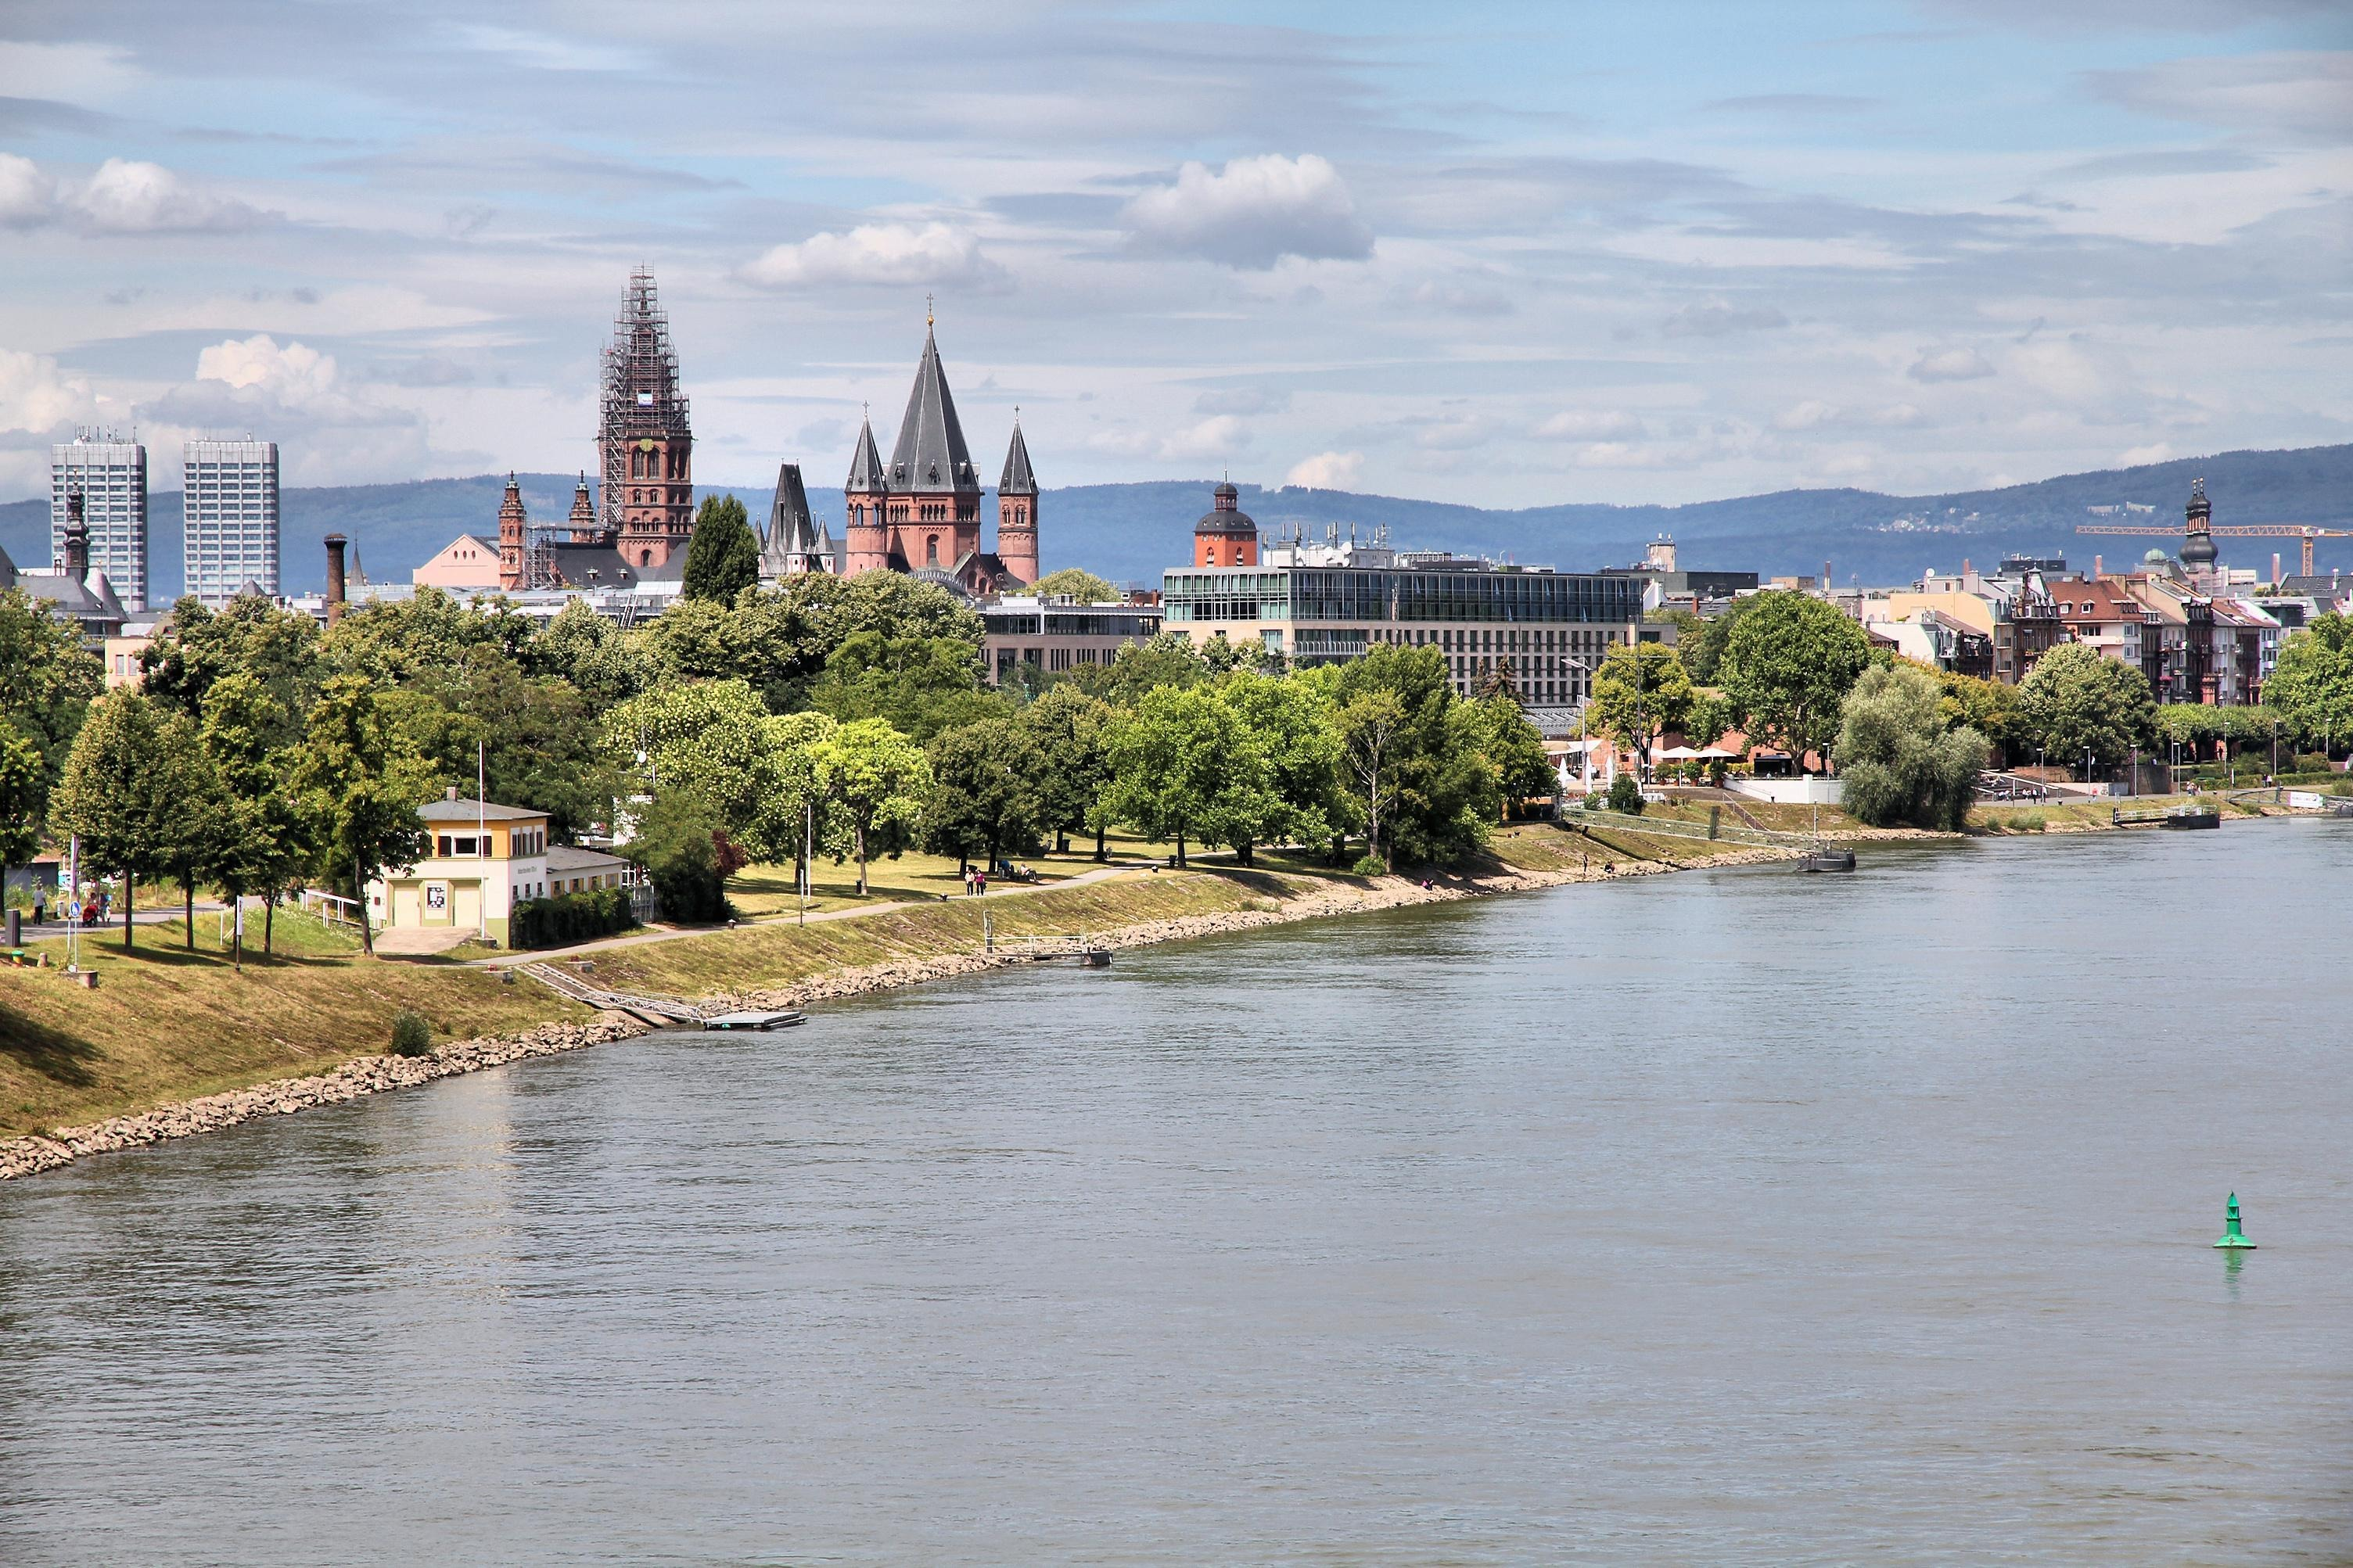 How to Spend 2 Days at the Rhine River